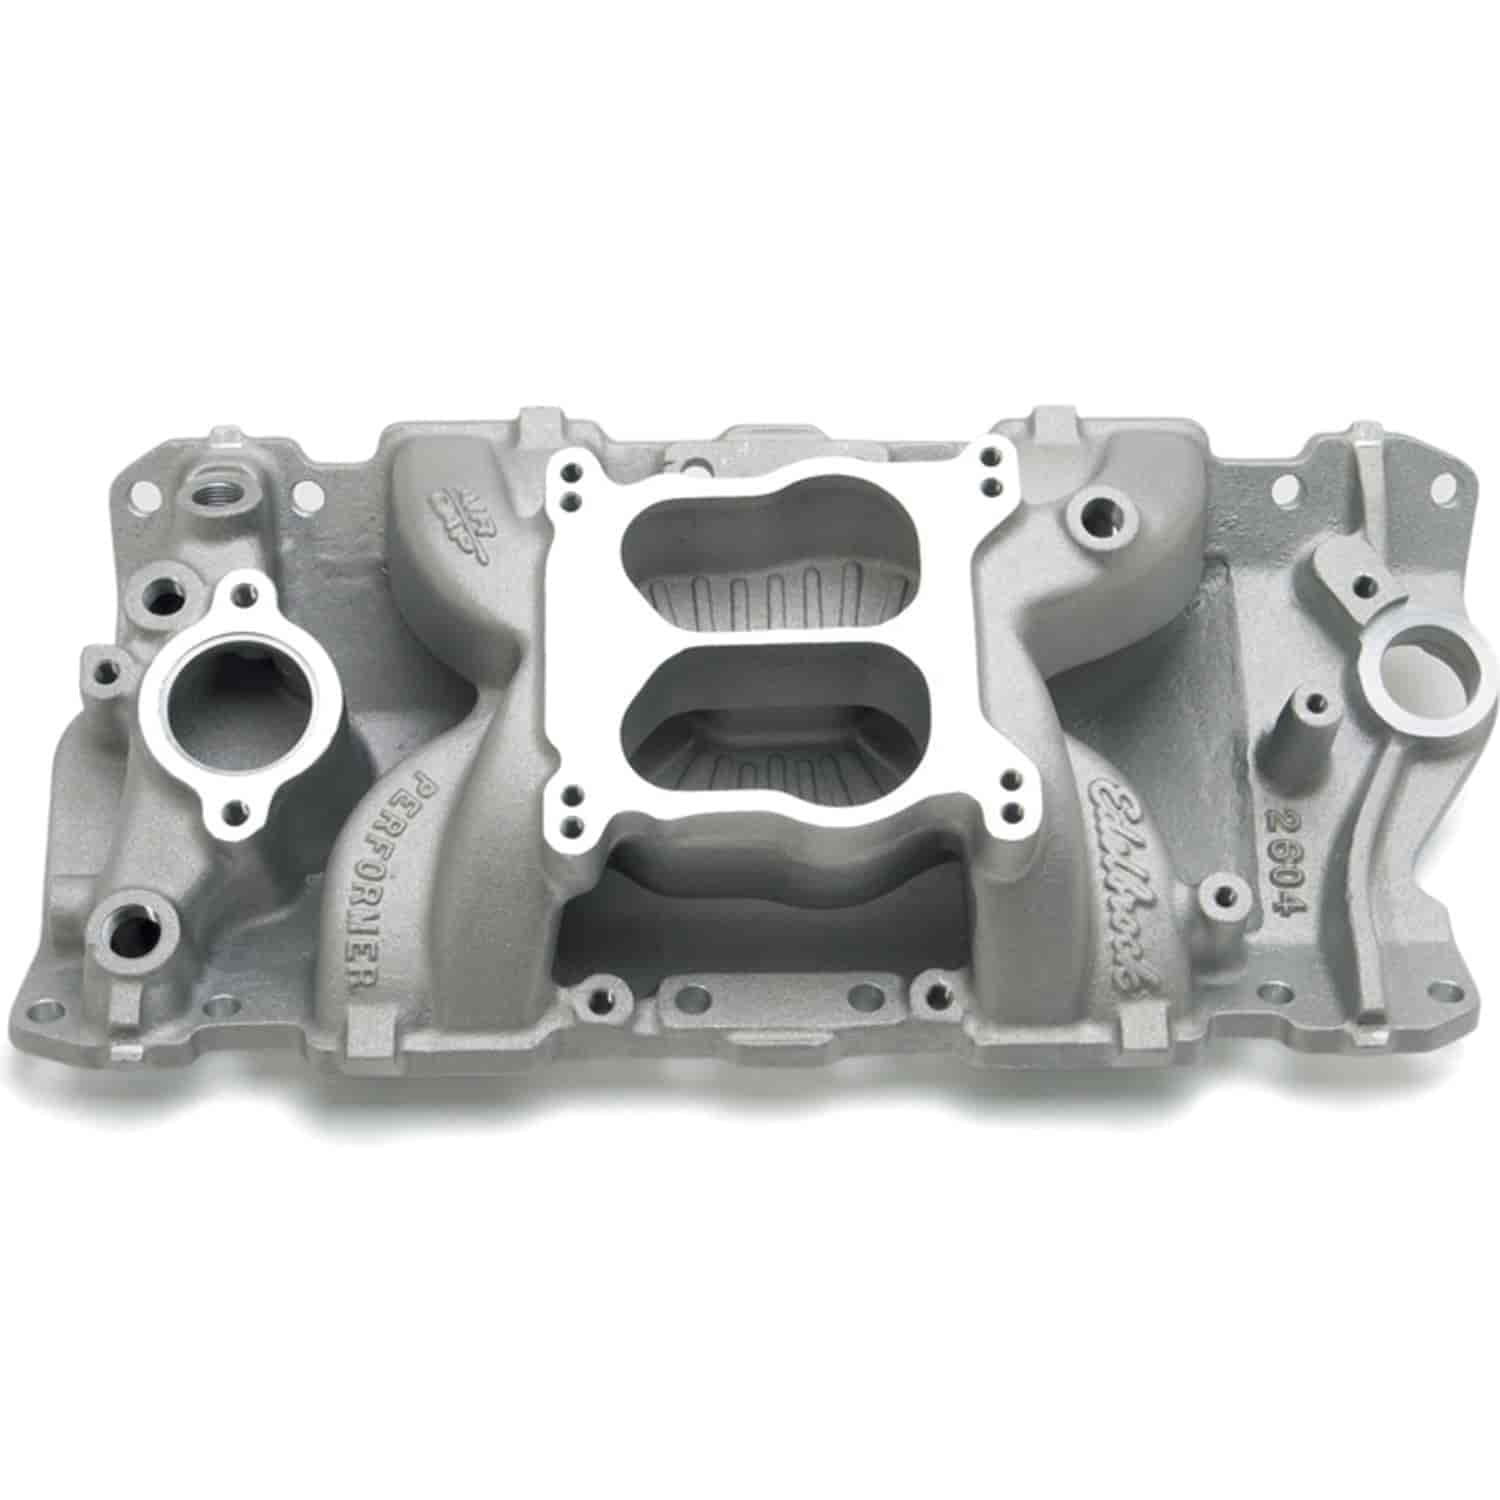 Edelbrock 2604 - Edelbrock Performer Air-Gap Intake Manifold for Chevy